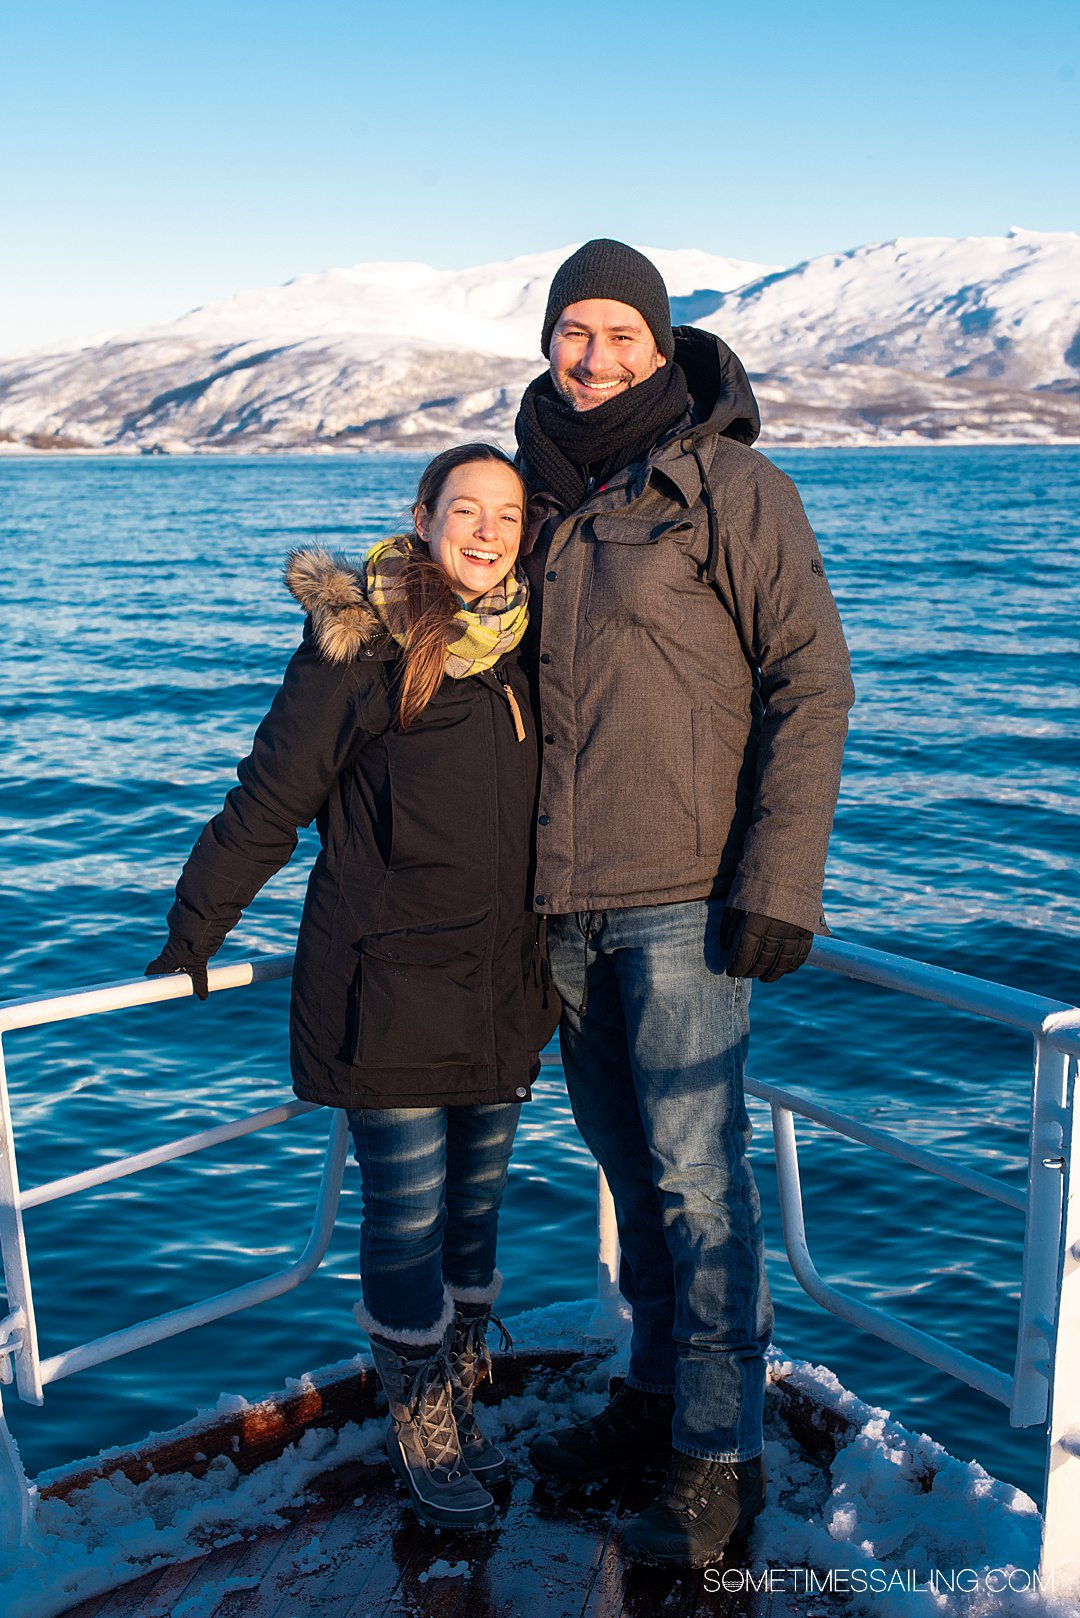 A couple at the stern of a ship on a Tromso, Norway boat tour with snowy mountains in the background.